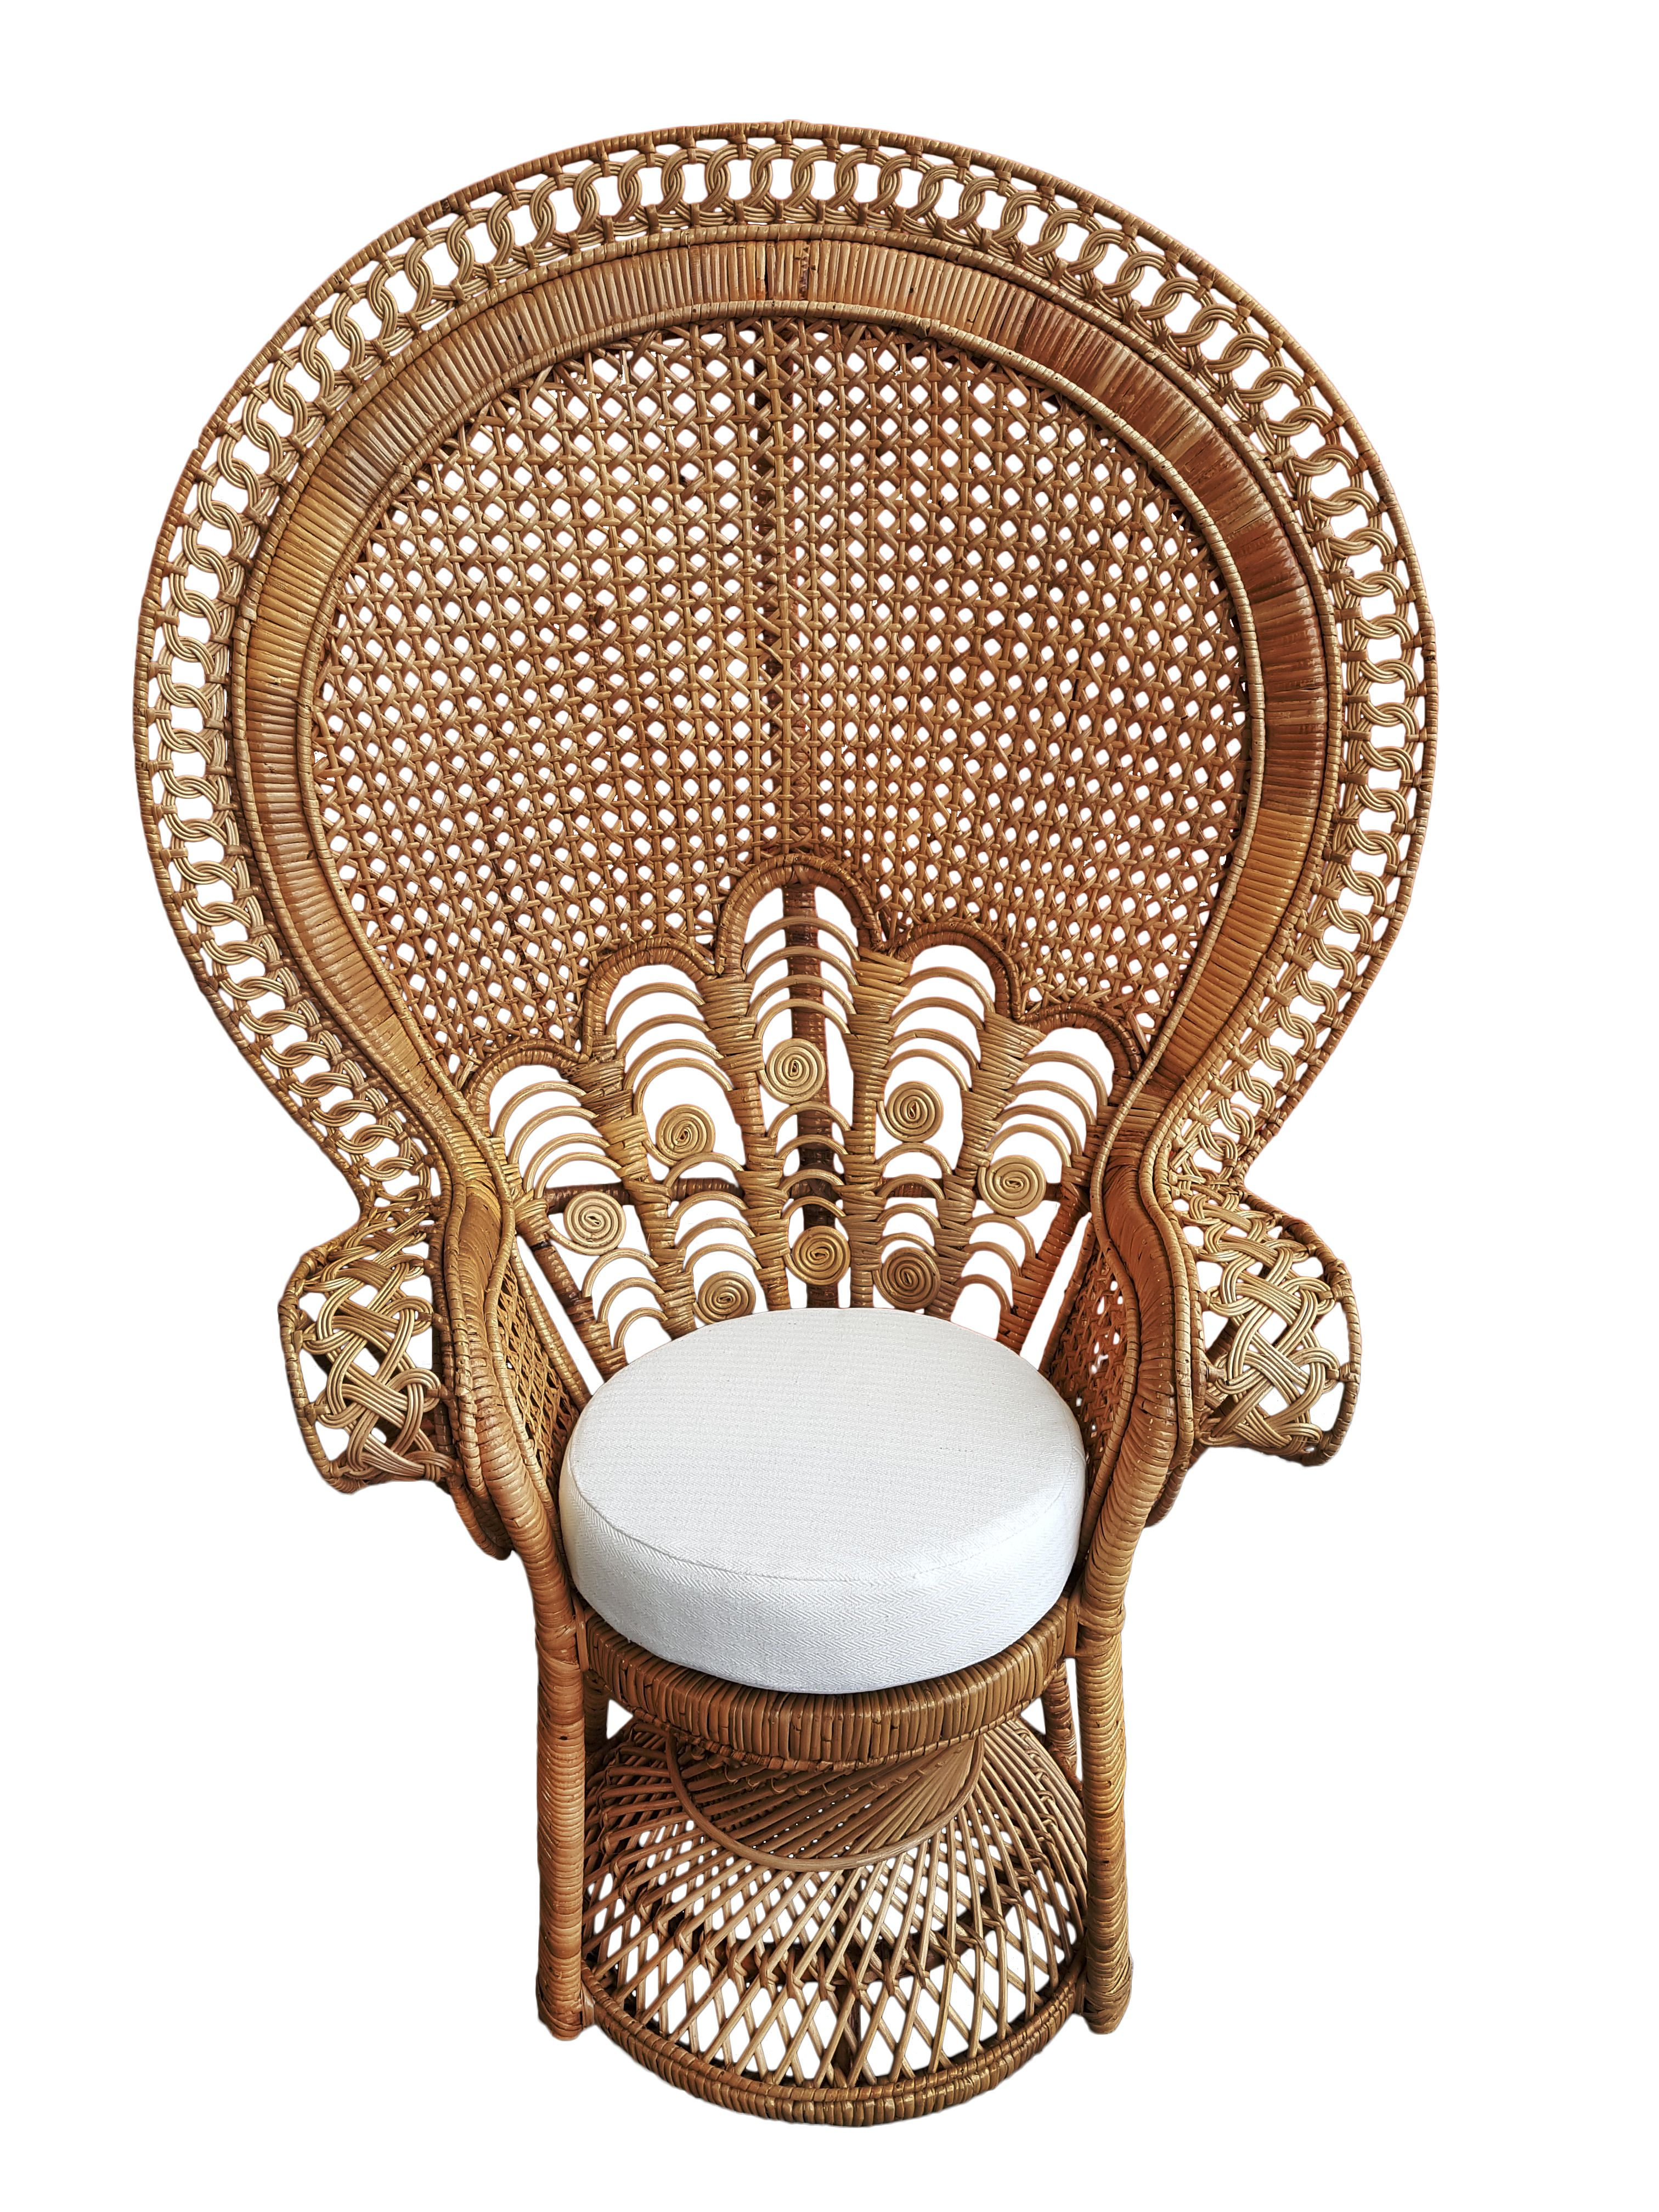 A beautiful peacock chair from canejava rattan and wooden